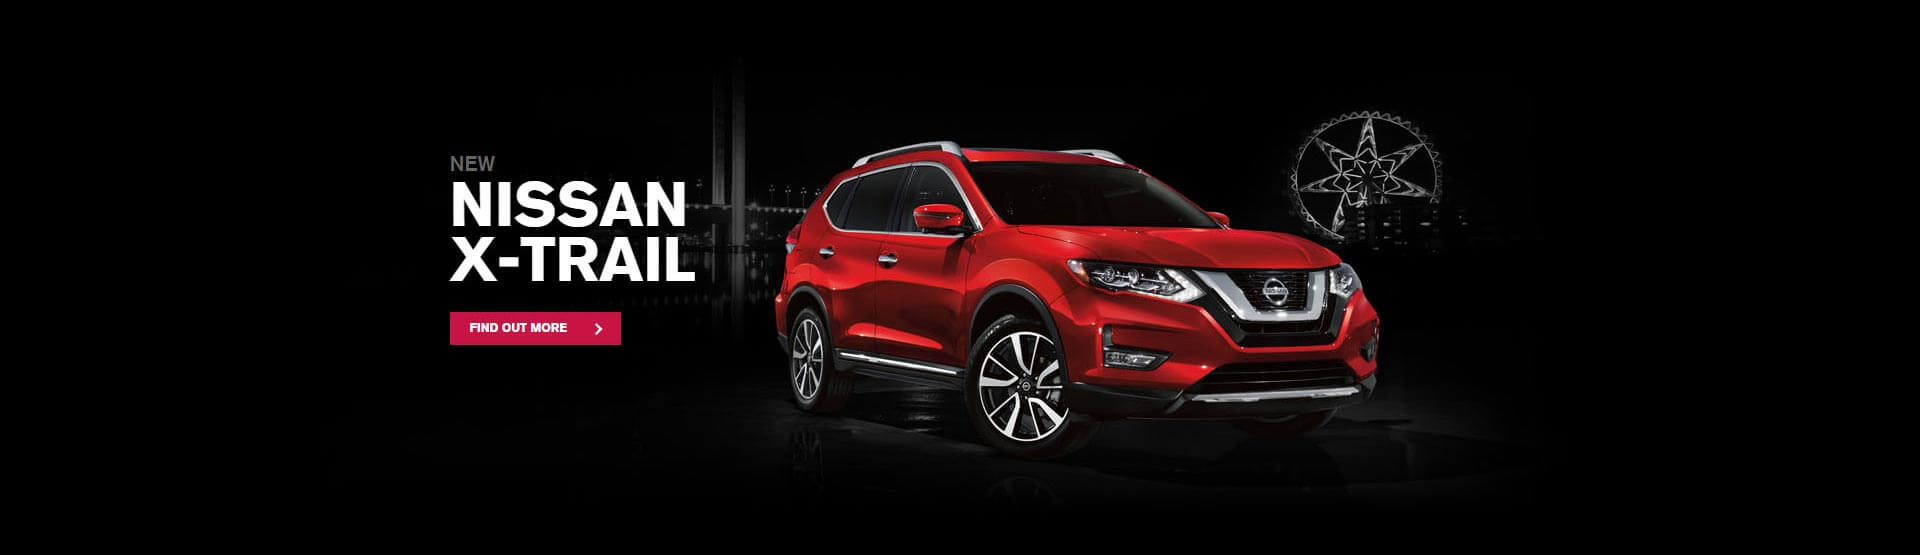 All-New X-Trail